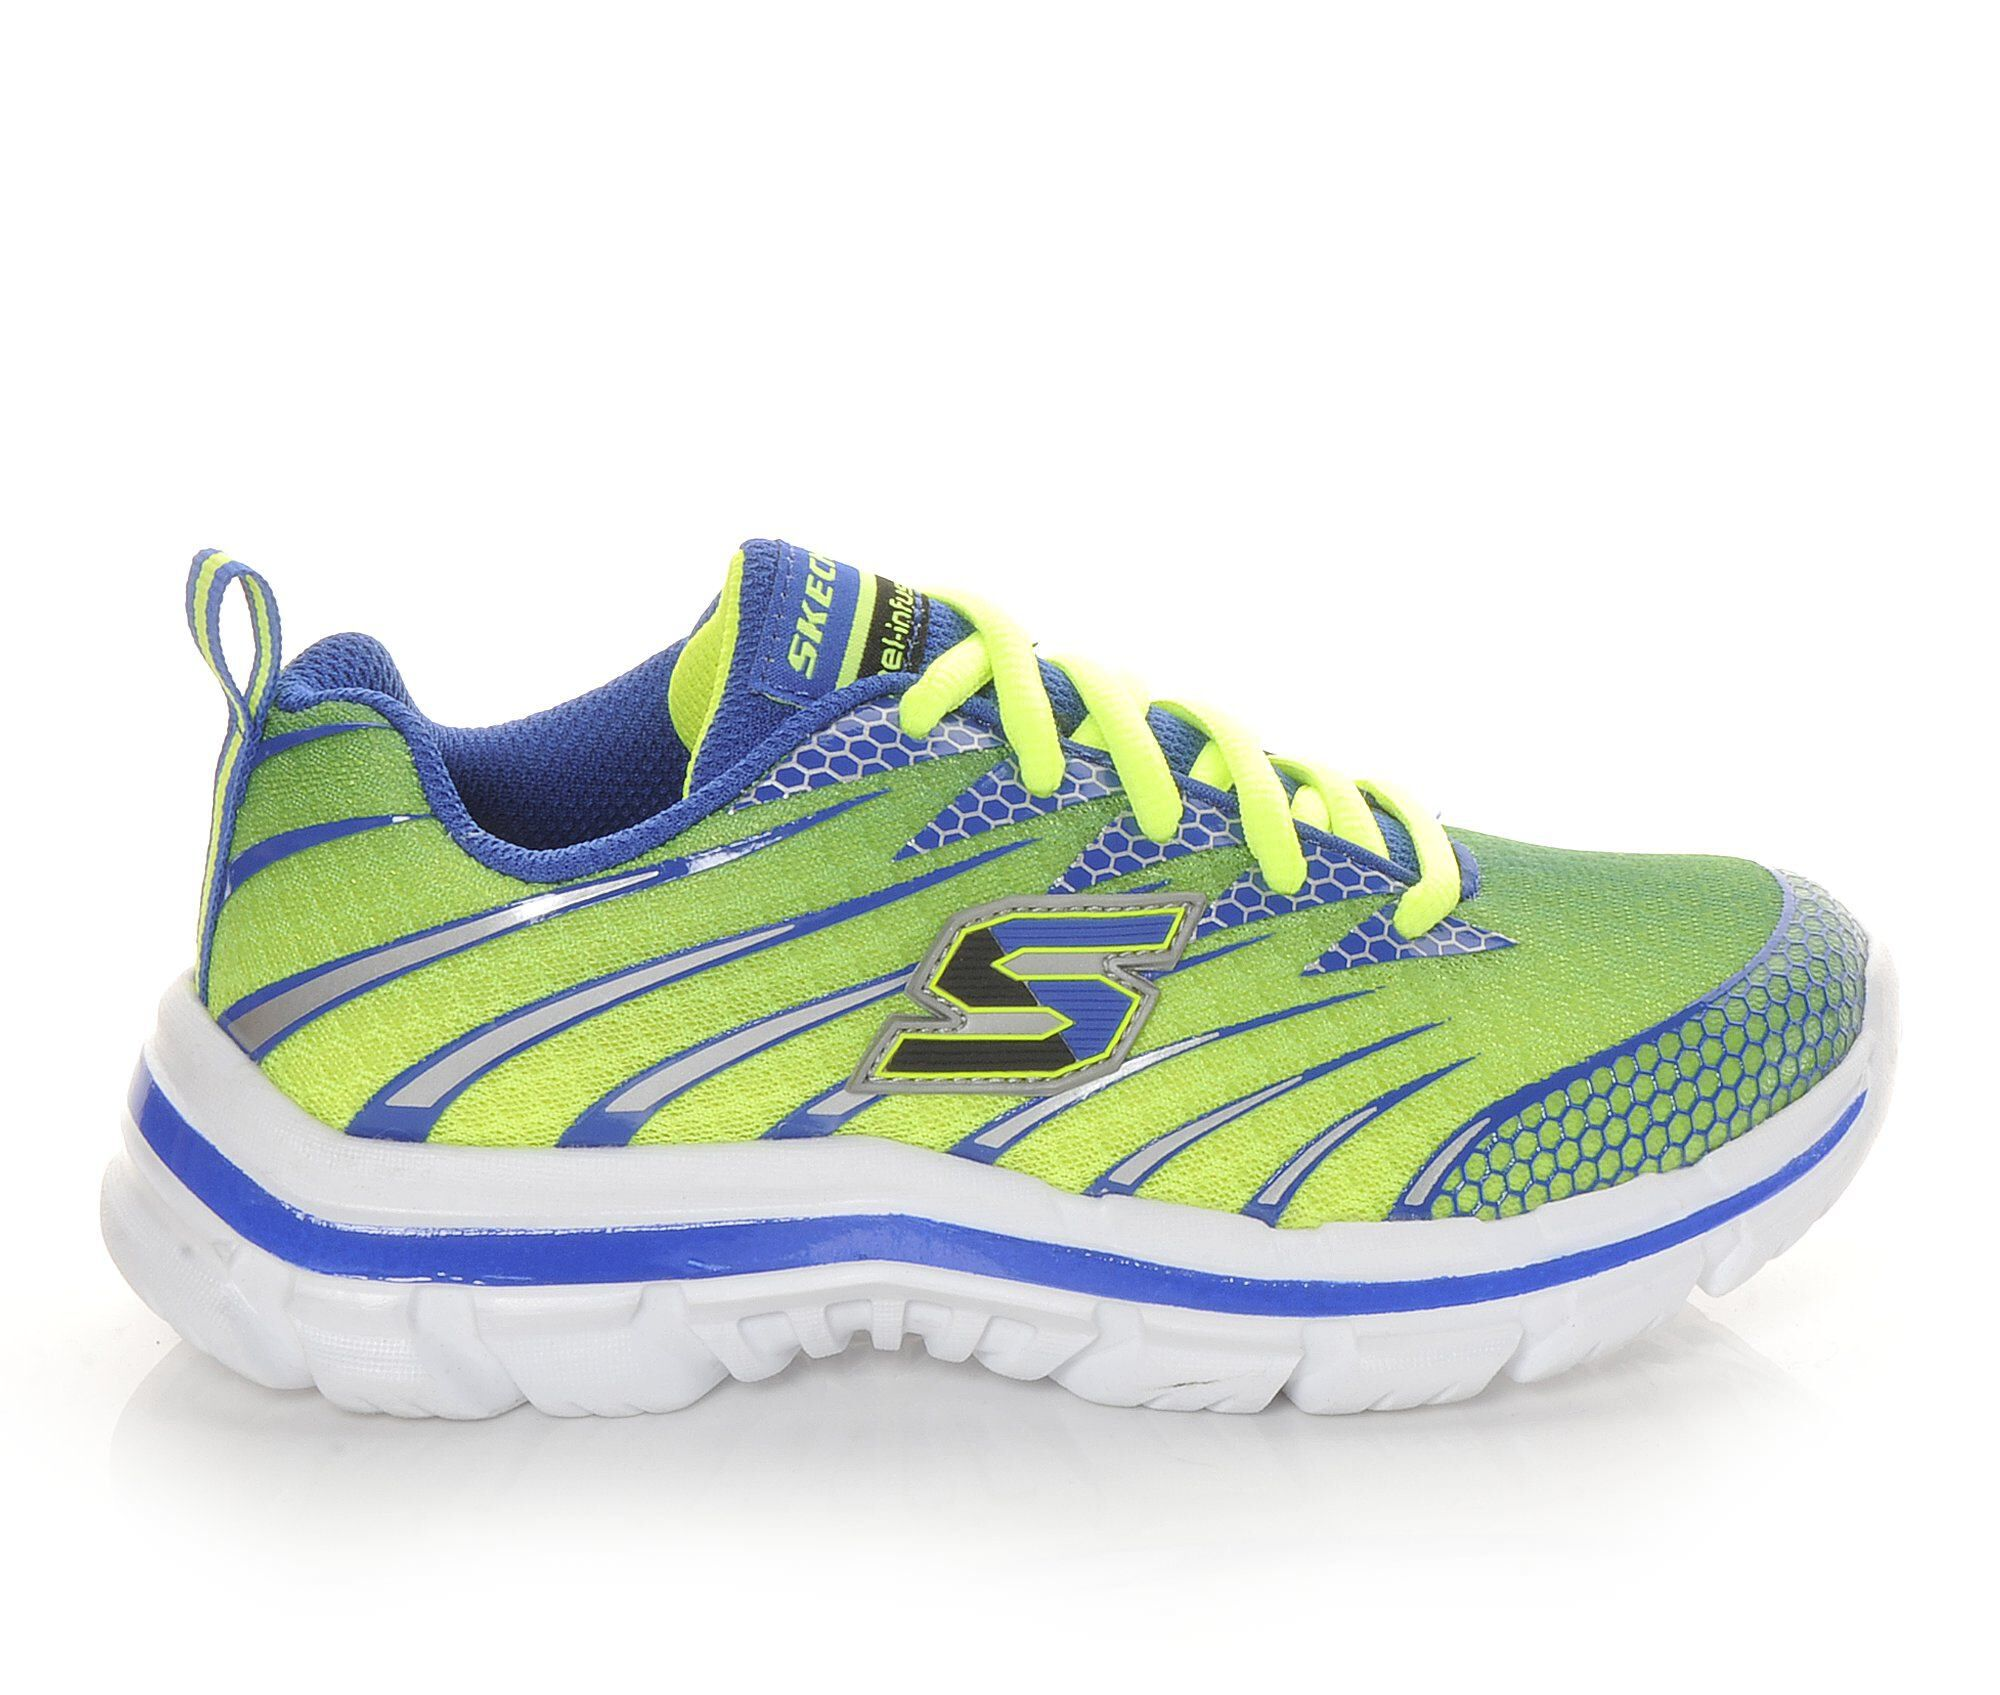 Skechers Shoes Skechers Nitrate Wide 10 5 7 Boys Sports Shoes Lime/Blue